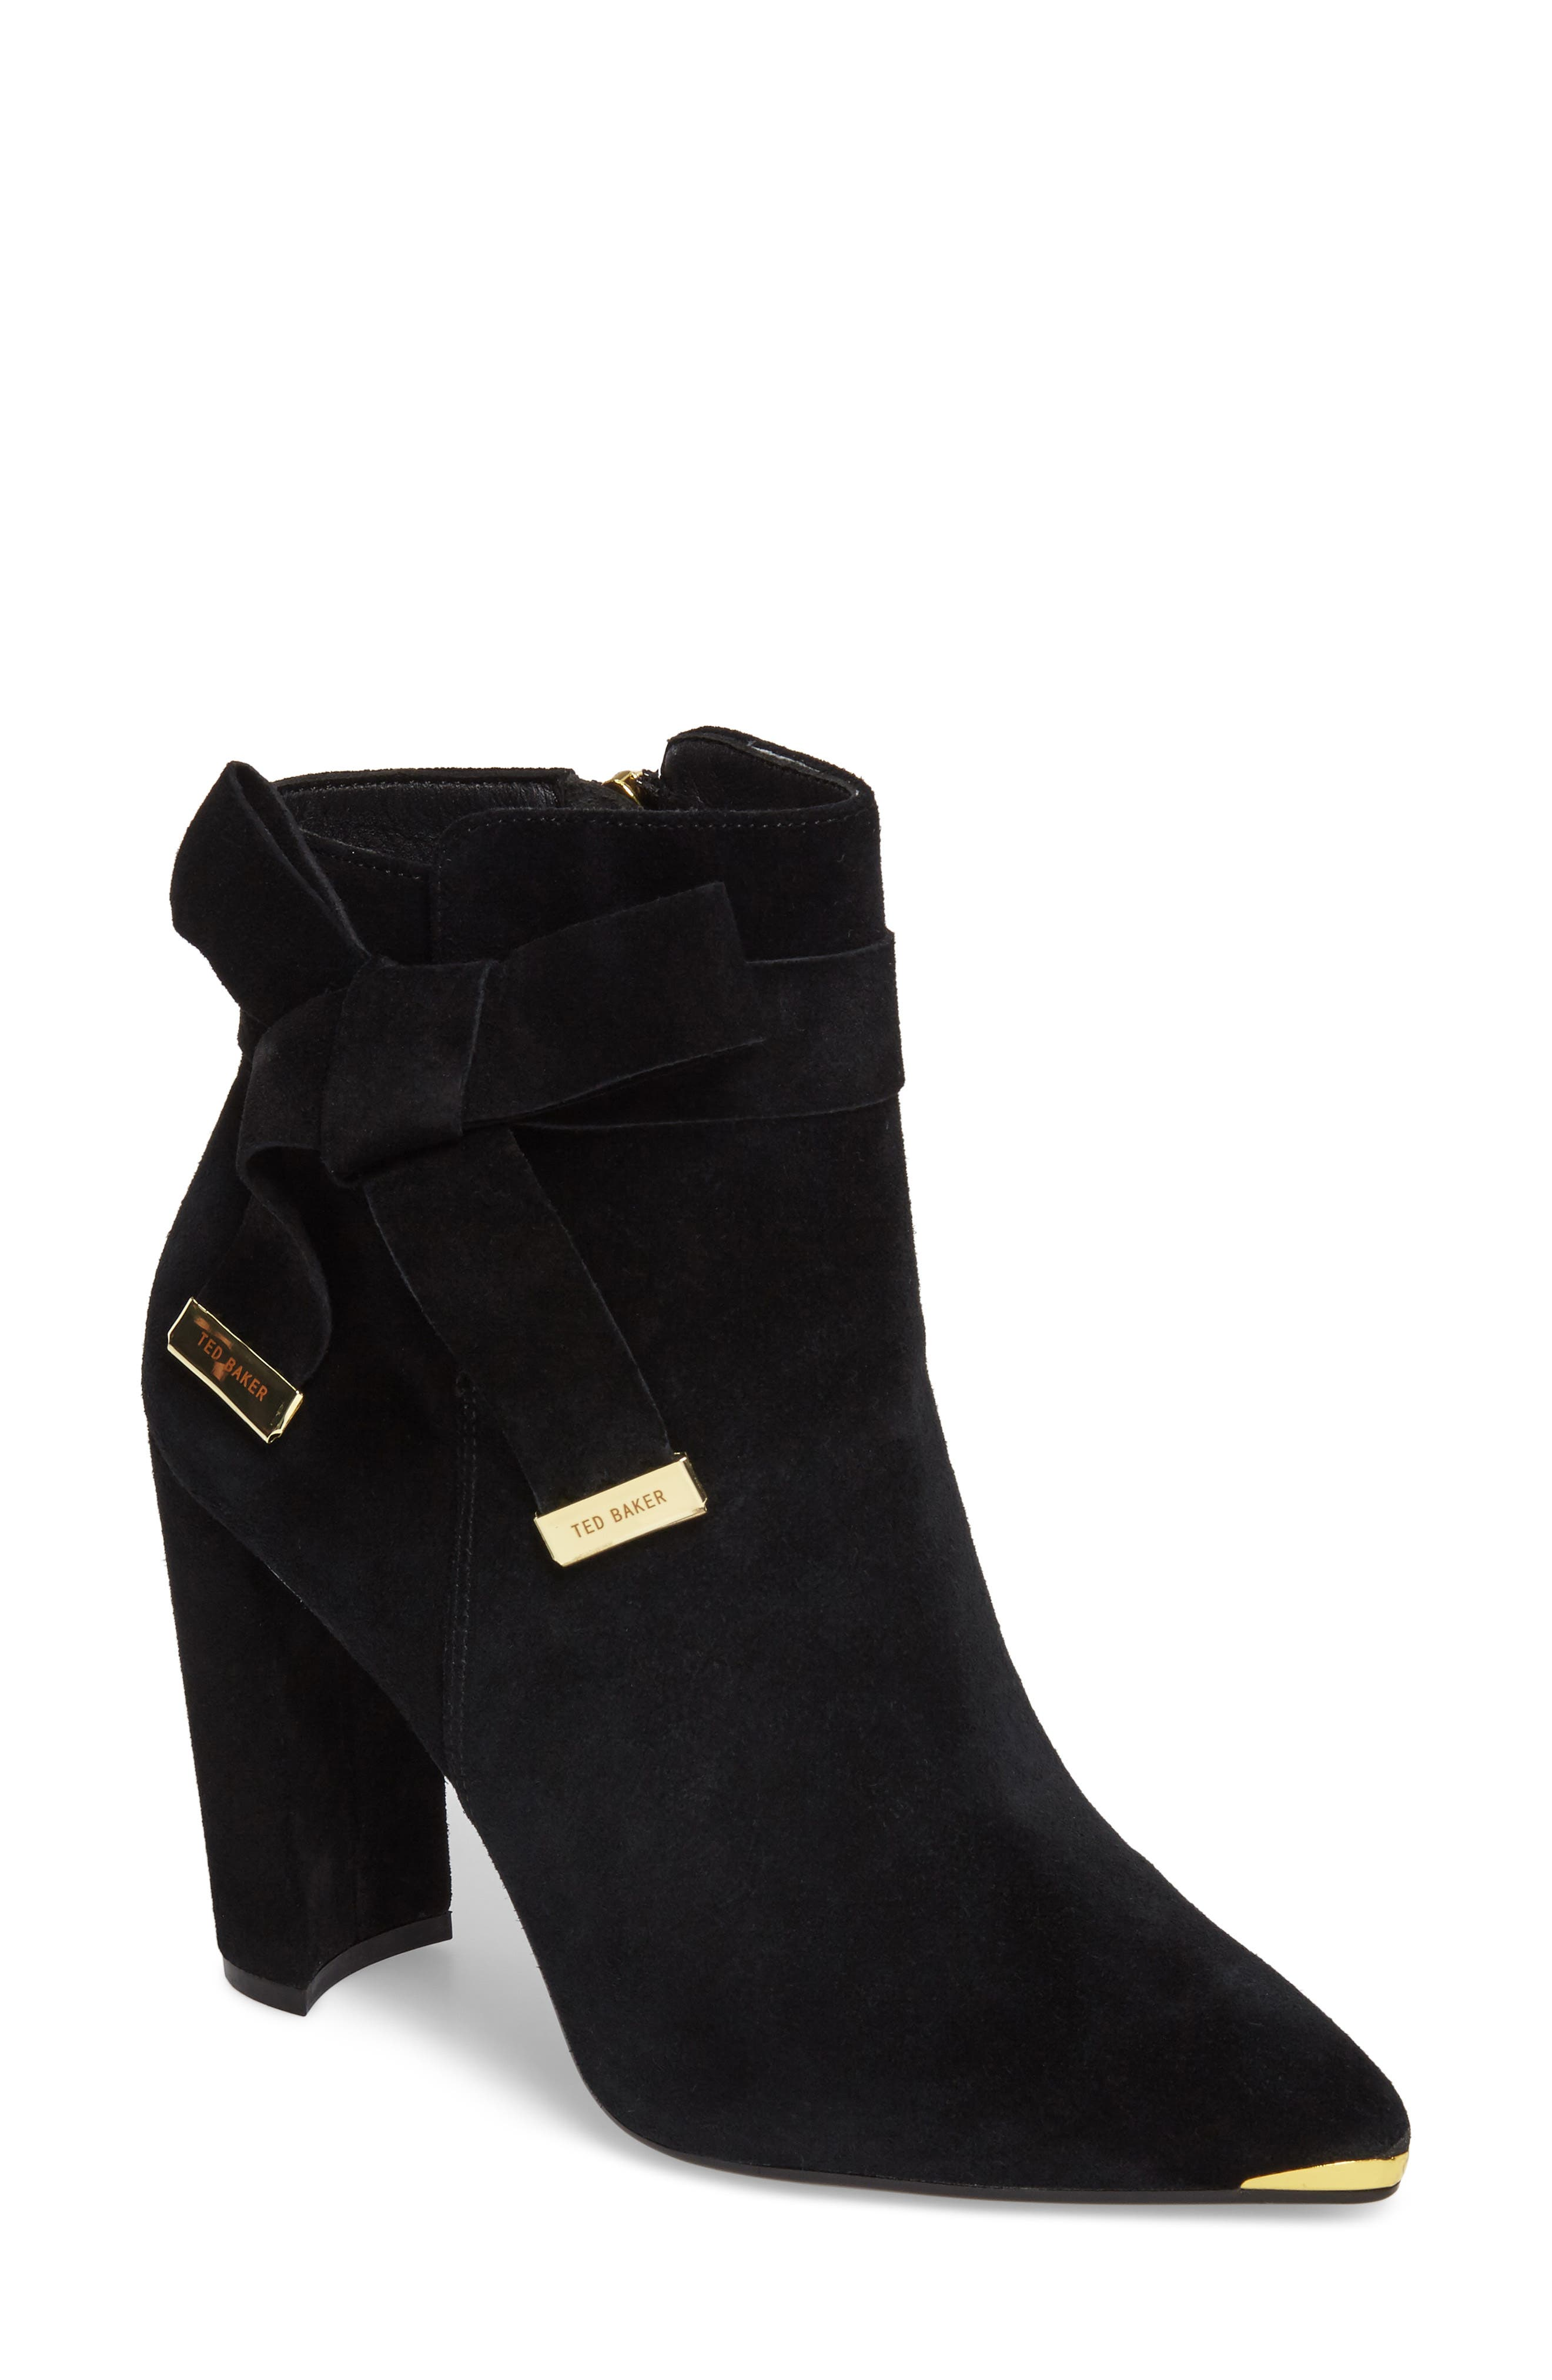 TED BAKER LONDON Sailly Bootie